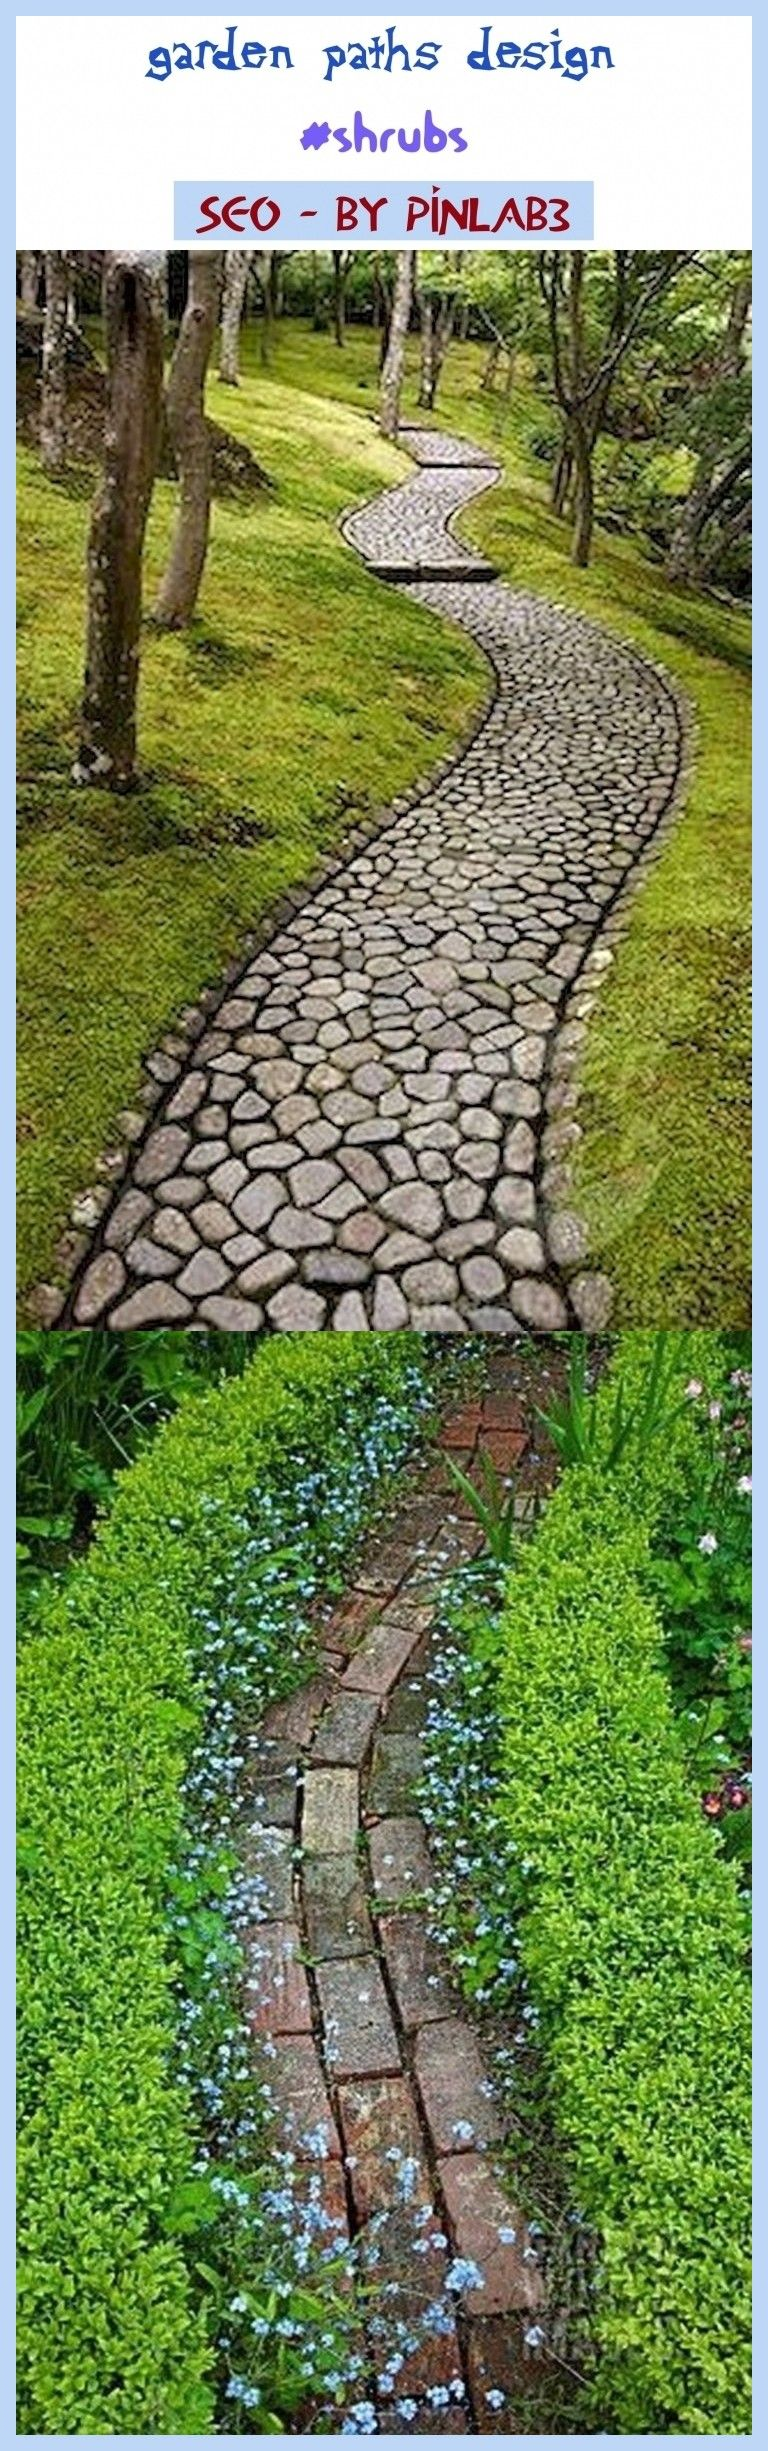 Photo of Garden paths design #shrubs #gardens. garden paths and walkways, garden paths ch…